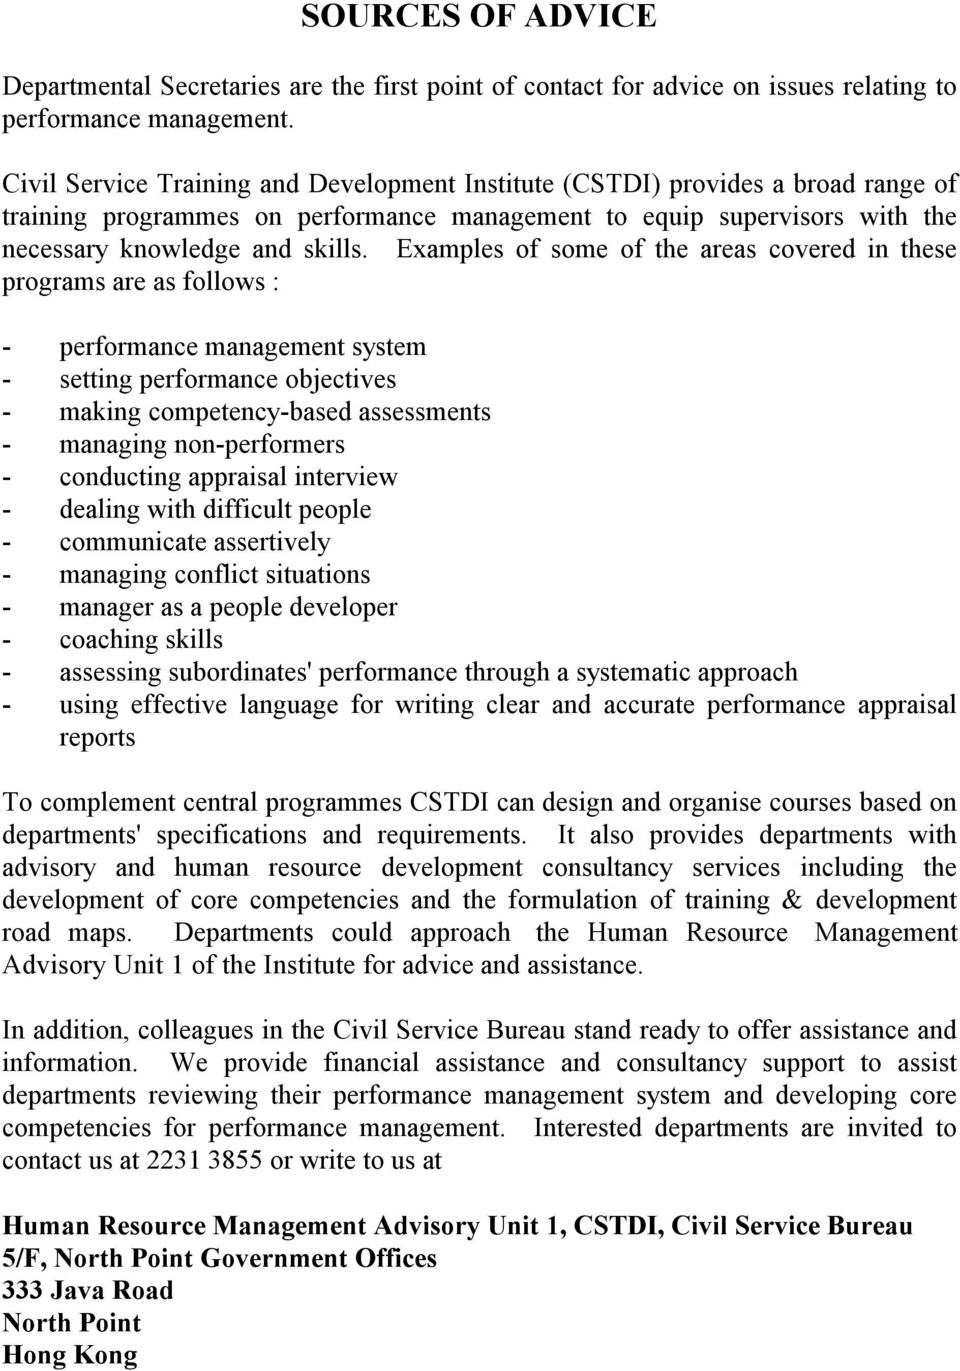 Performance Management Guide - PDF